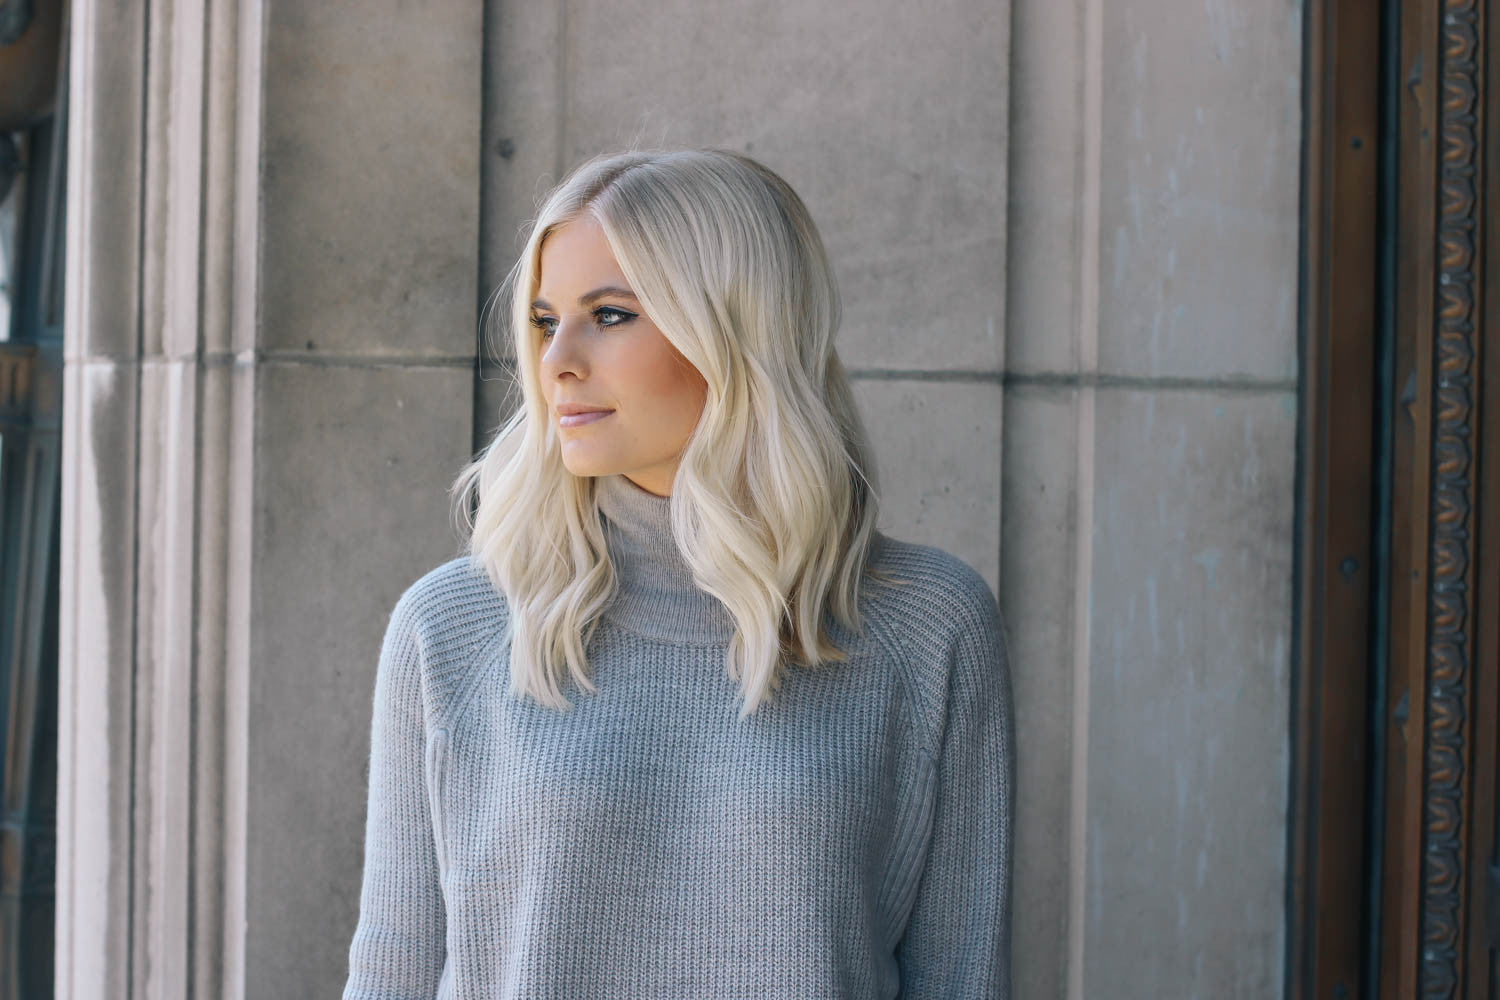 Lemon Blonde - Cozy Turtleneck